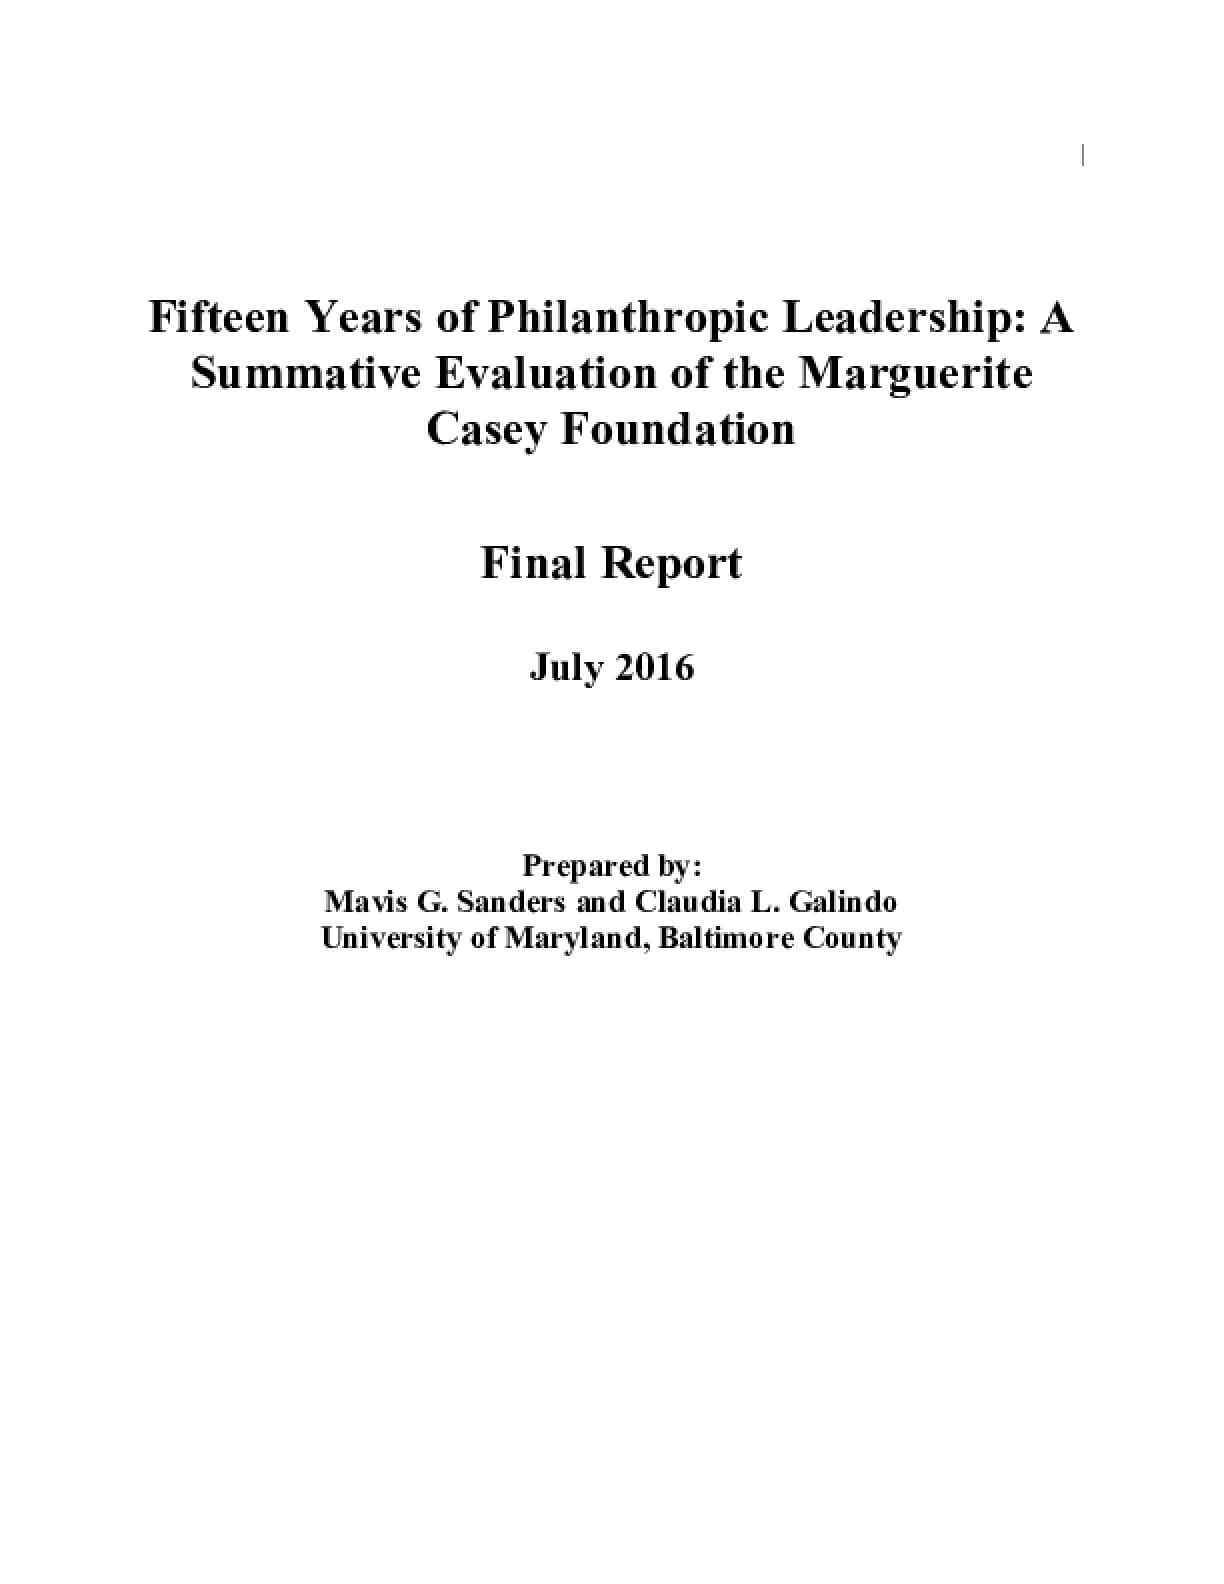 Fifteen Years of Philanthropic Leadership: A Summative Evaluation of the Marguerite Casey Foundation